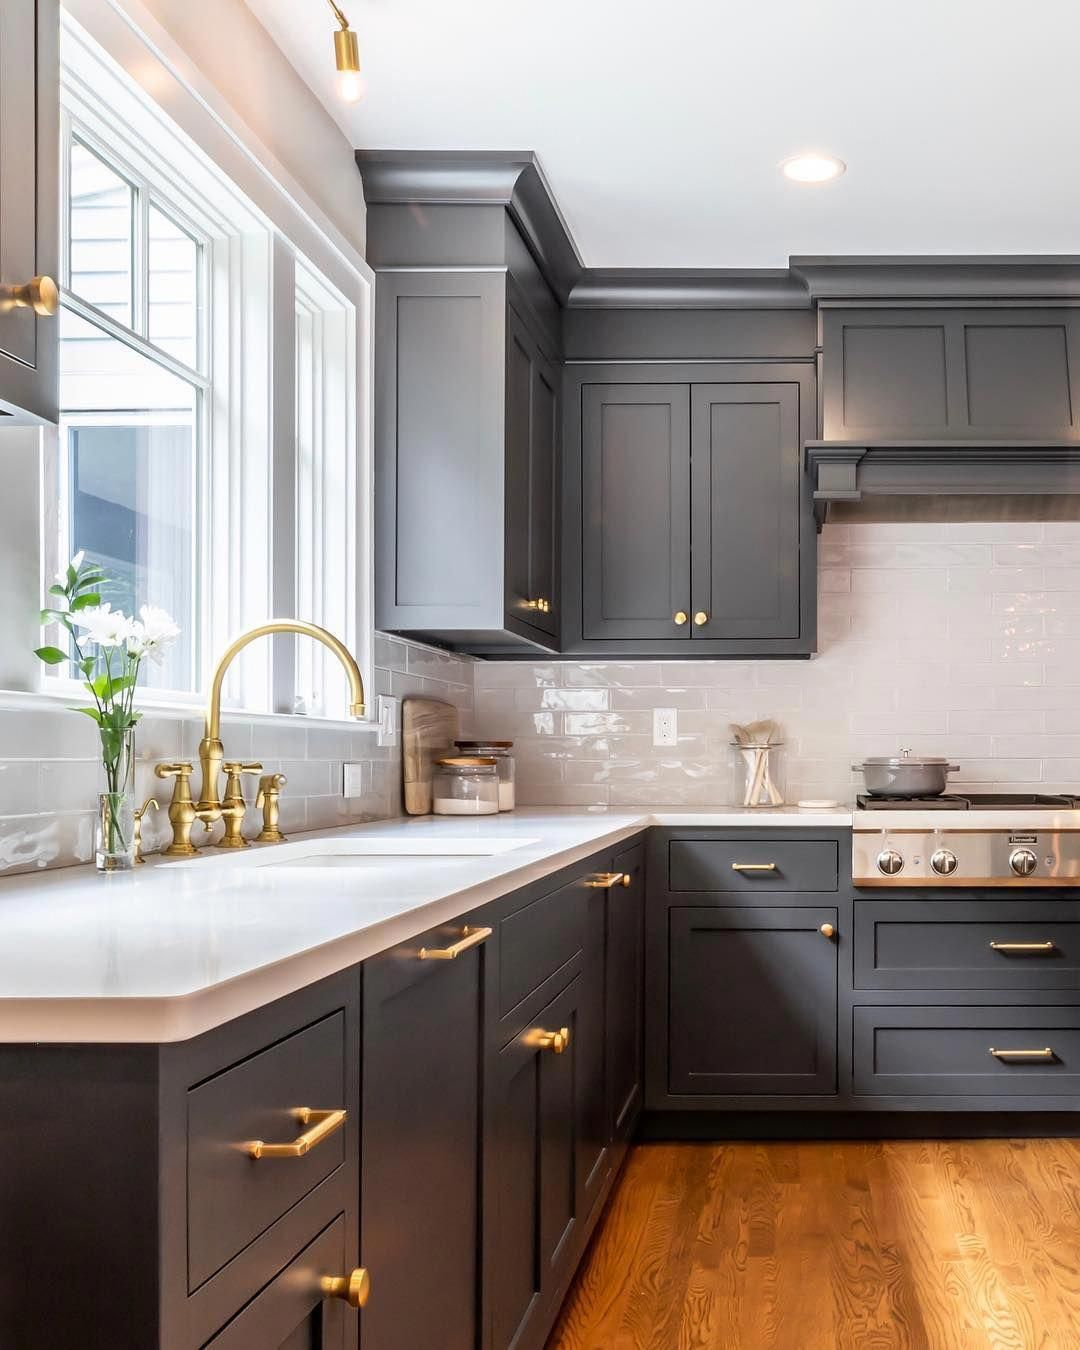 beautiful photo go look at our write up for many more concepts greykitchens diy kitchen on kitchen remodel gold hardware id=58827